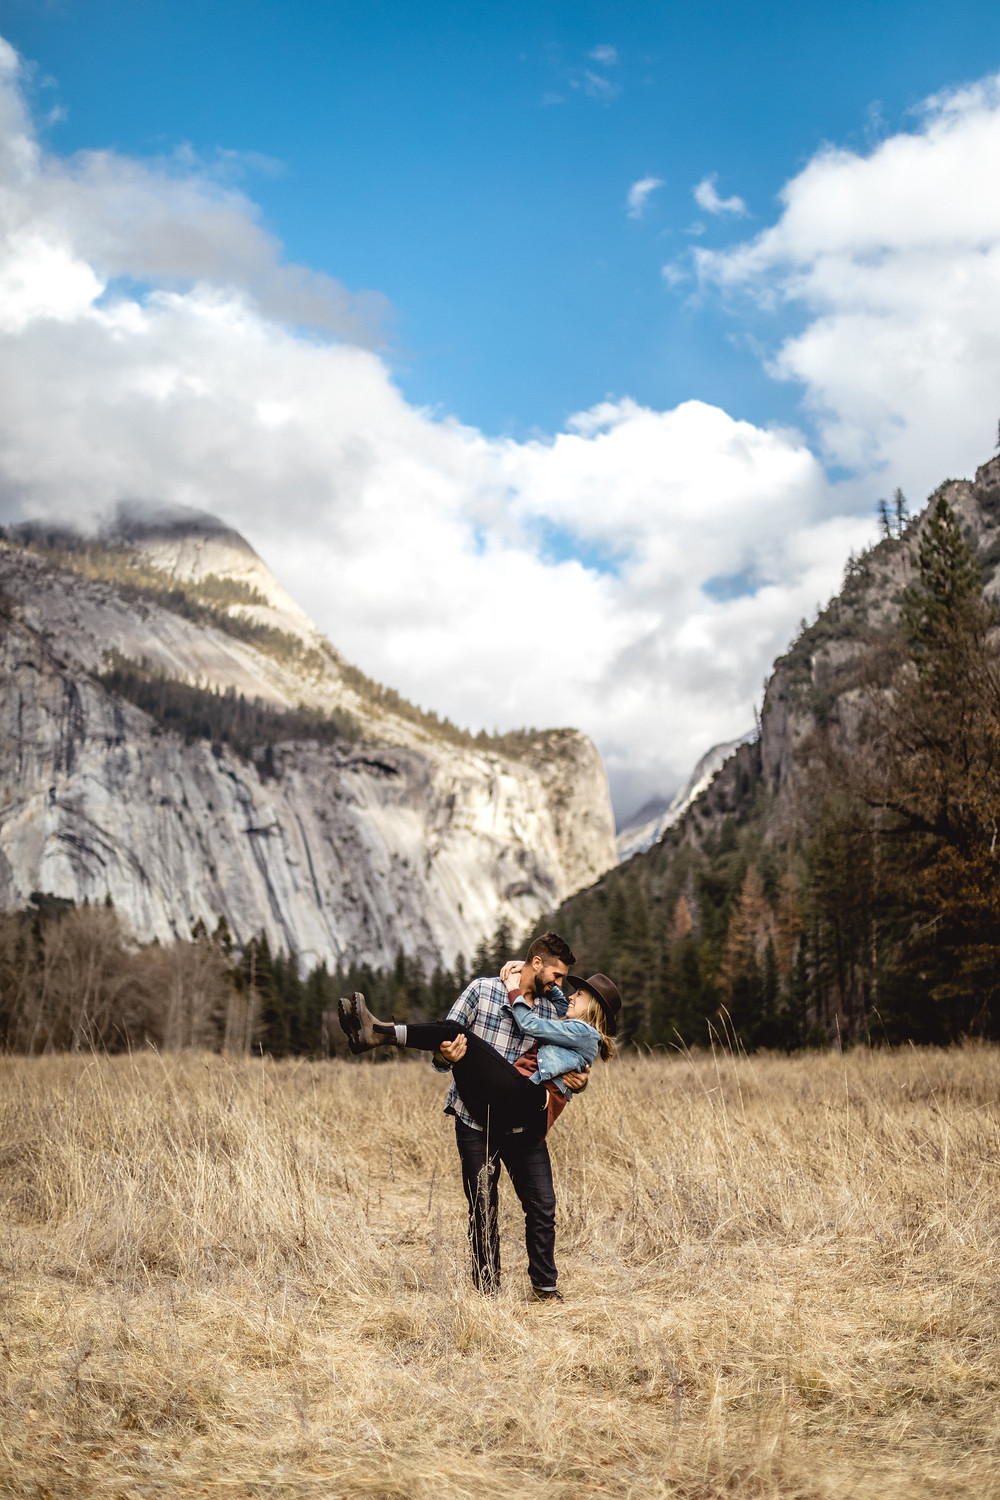 Making couple photos in the nature of Yosemite